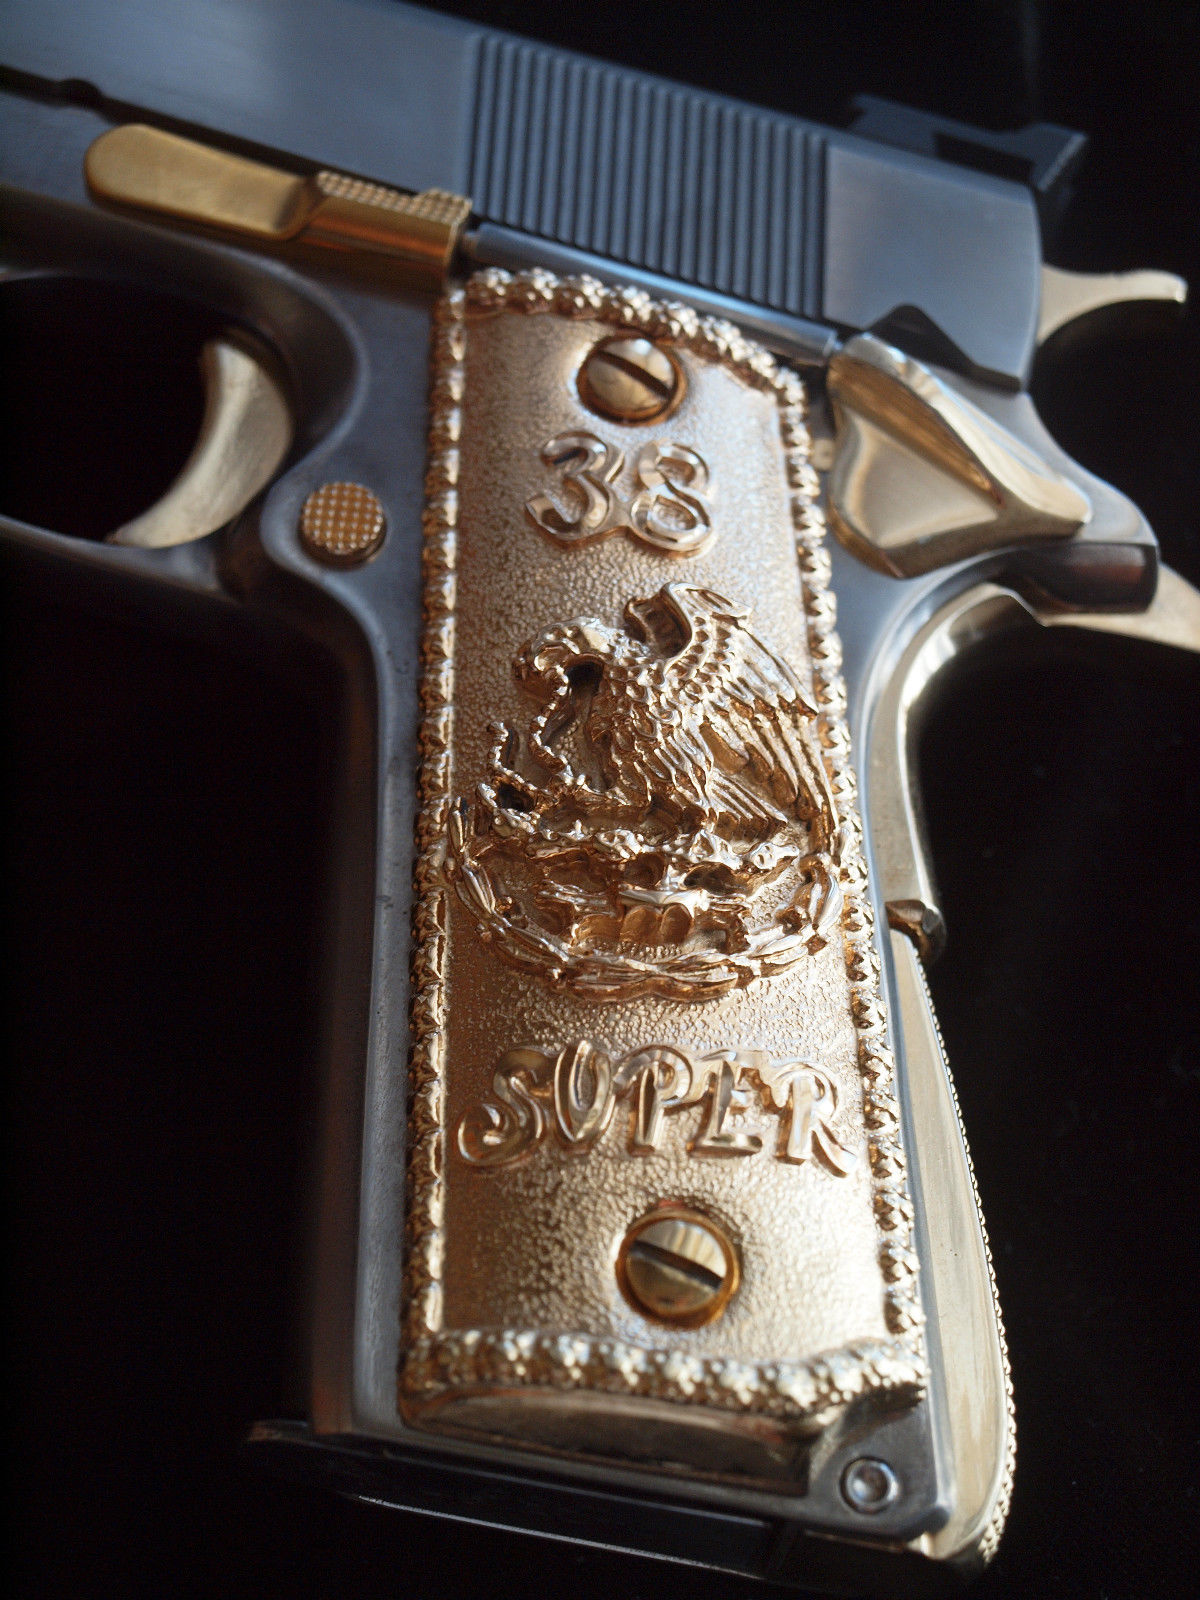 38 Super Old Mexican Eagle Gold Plated Pistol Grips Rg